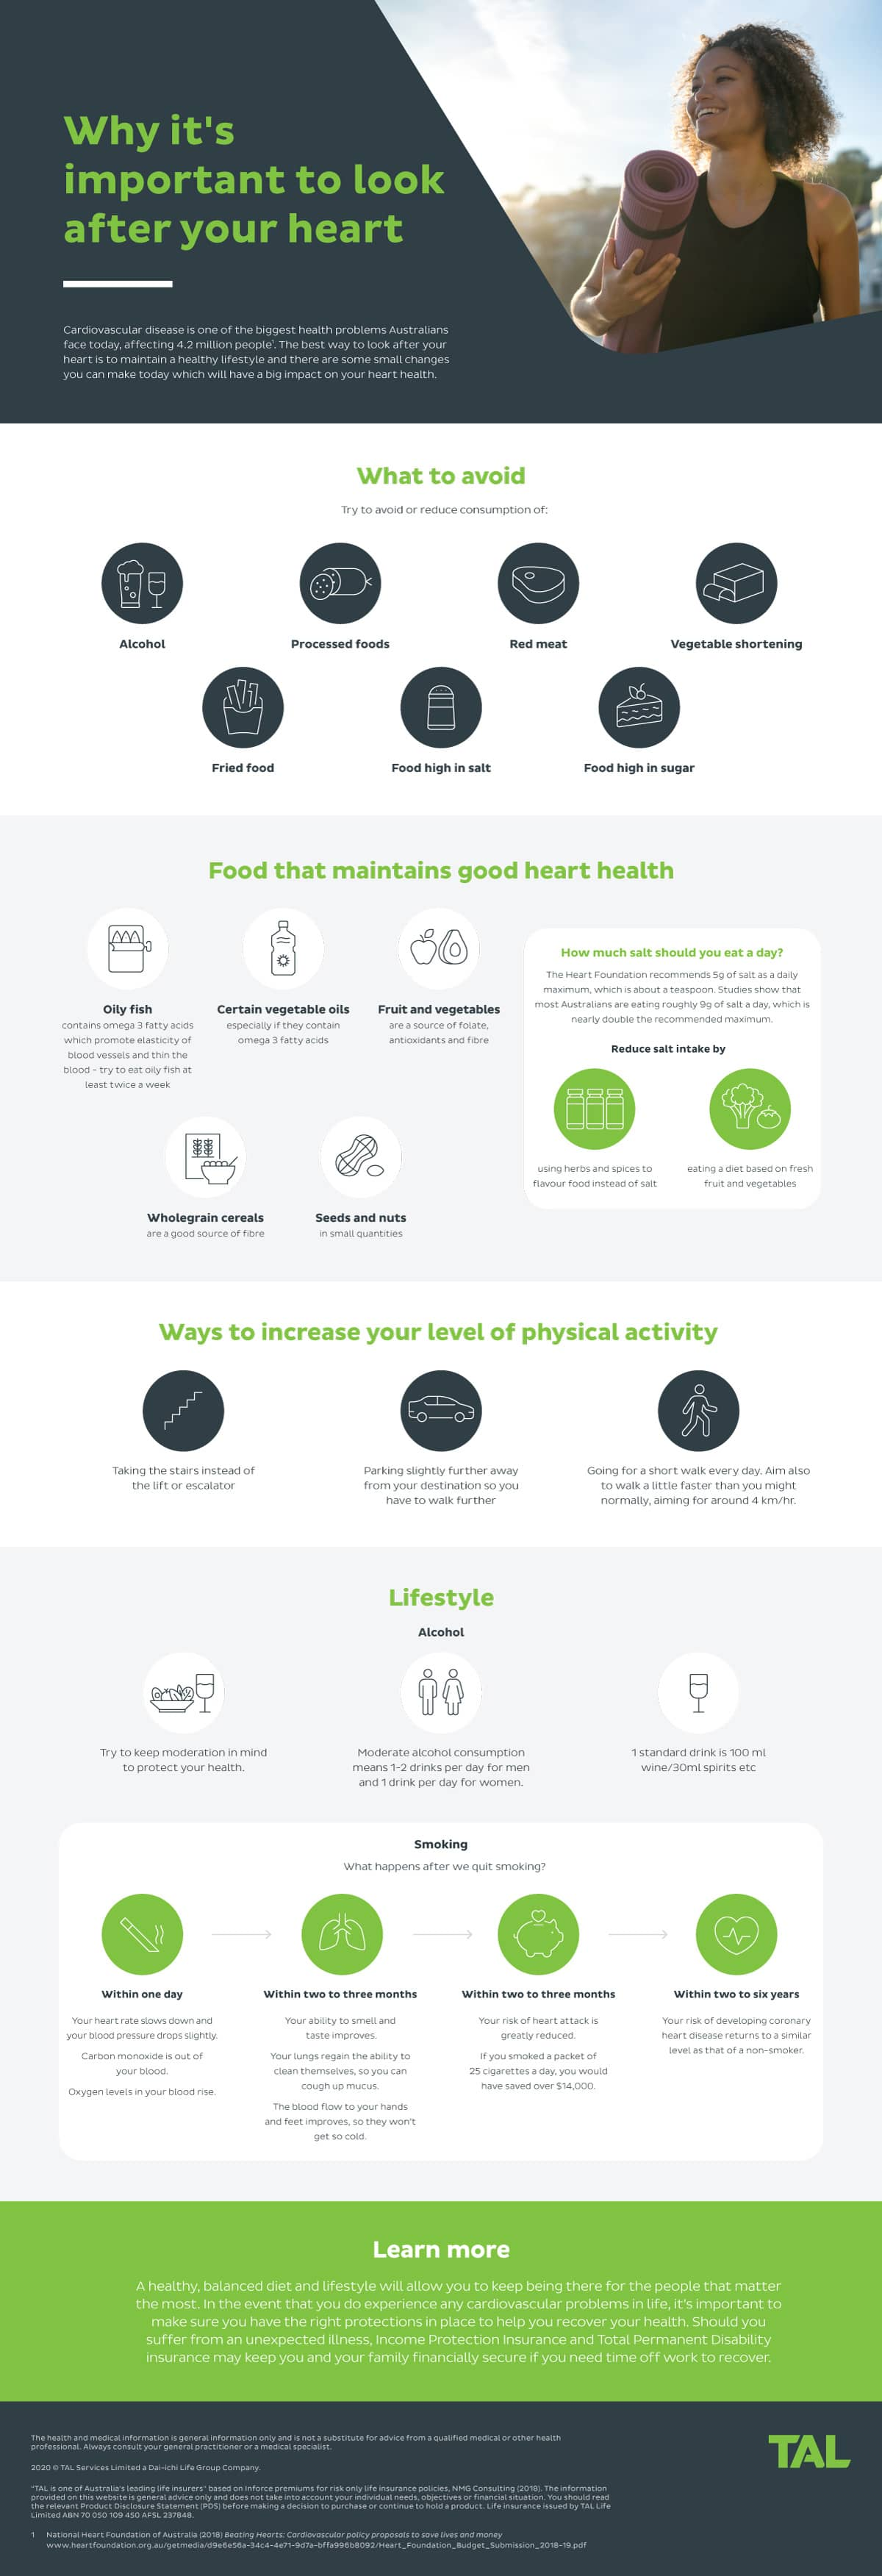 Why it's important to look after your heart. Some of the best way to look after your heart health is to maintain a healthy lifestyle, which will have a big impact on your heart.